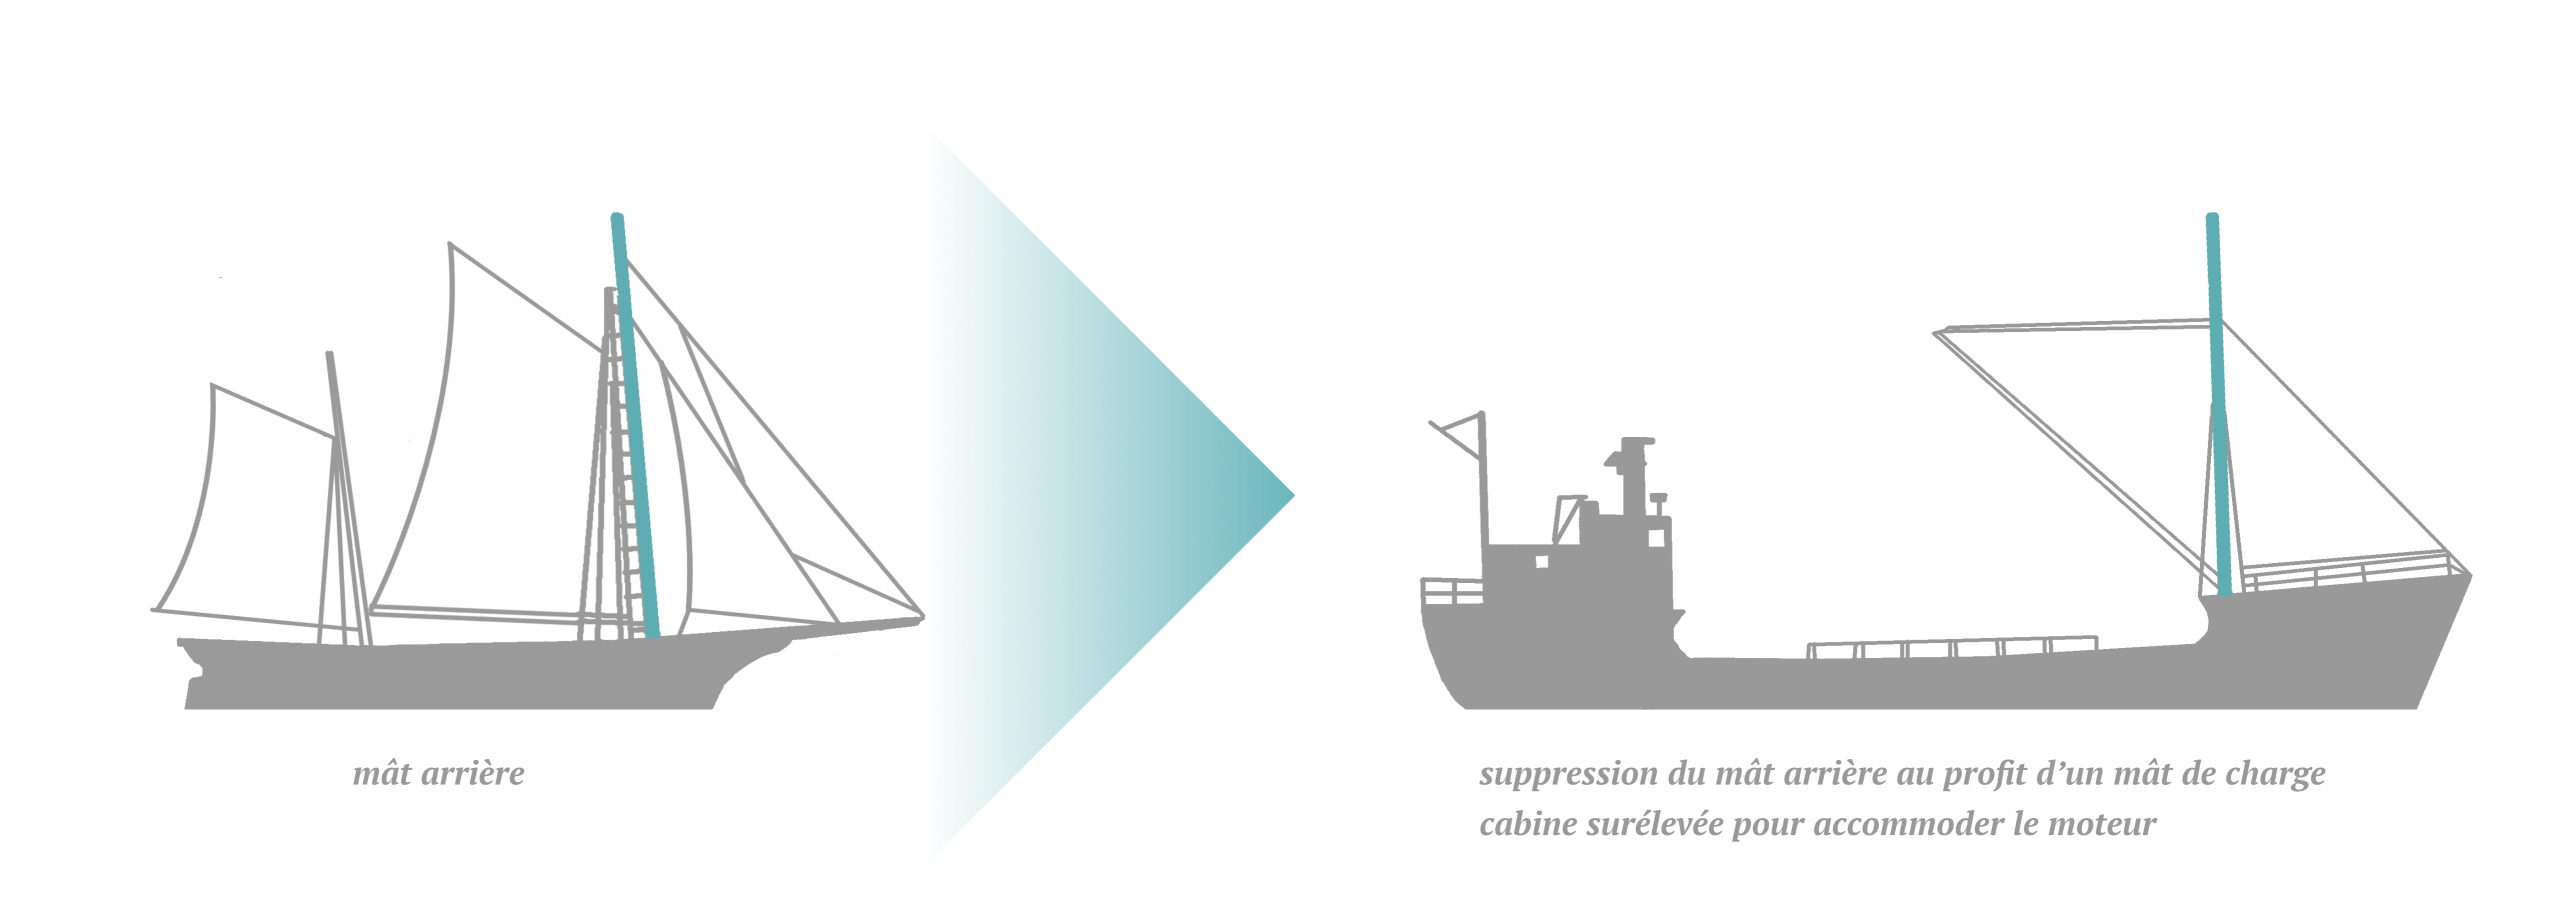 An image depicting the evolution of sail-powered schooners towards motor-powered ships. To the left there is an illustration of a sail-powered schooner with its foremast highlighted in green. To the right there is a motor-powered schooner with its boom (front) mast is highlighted in green.